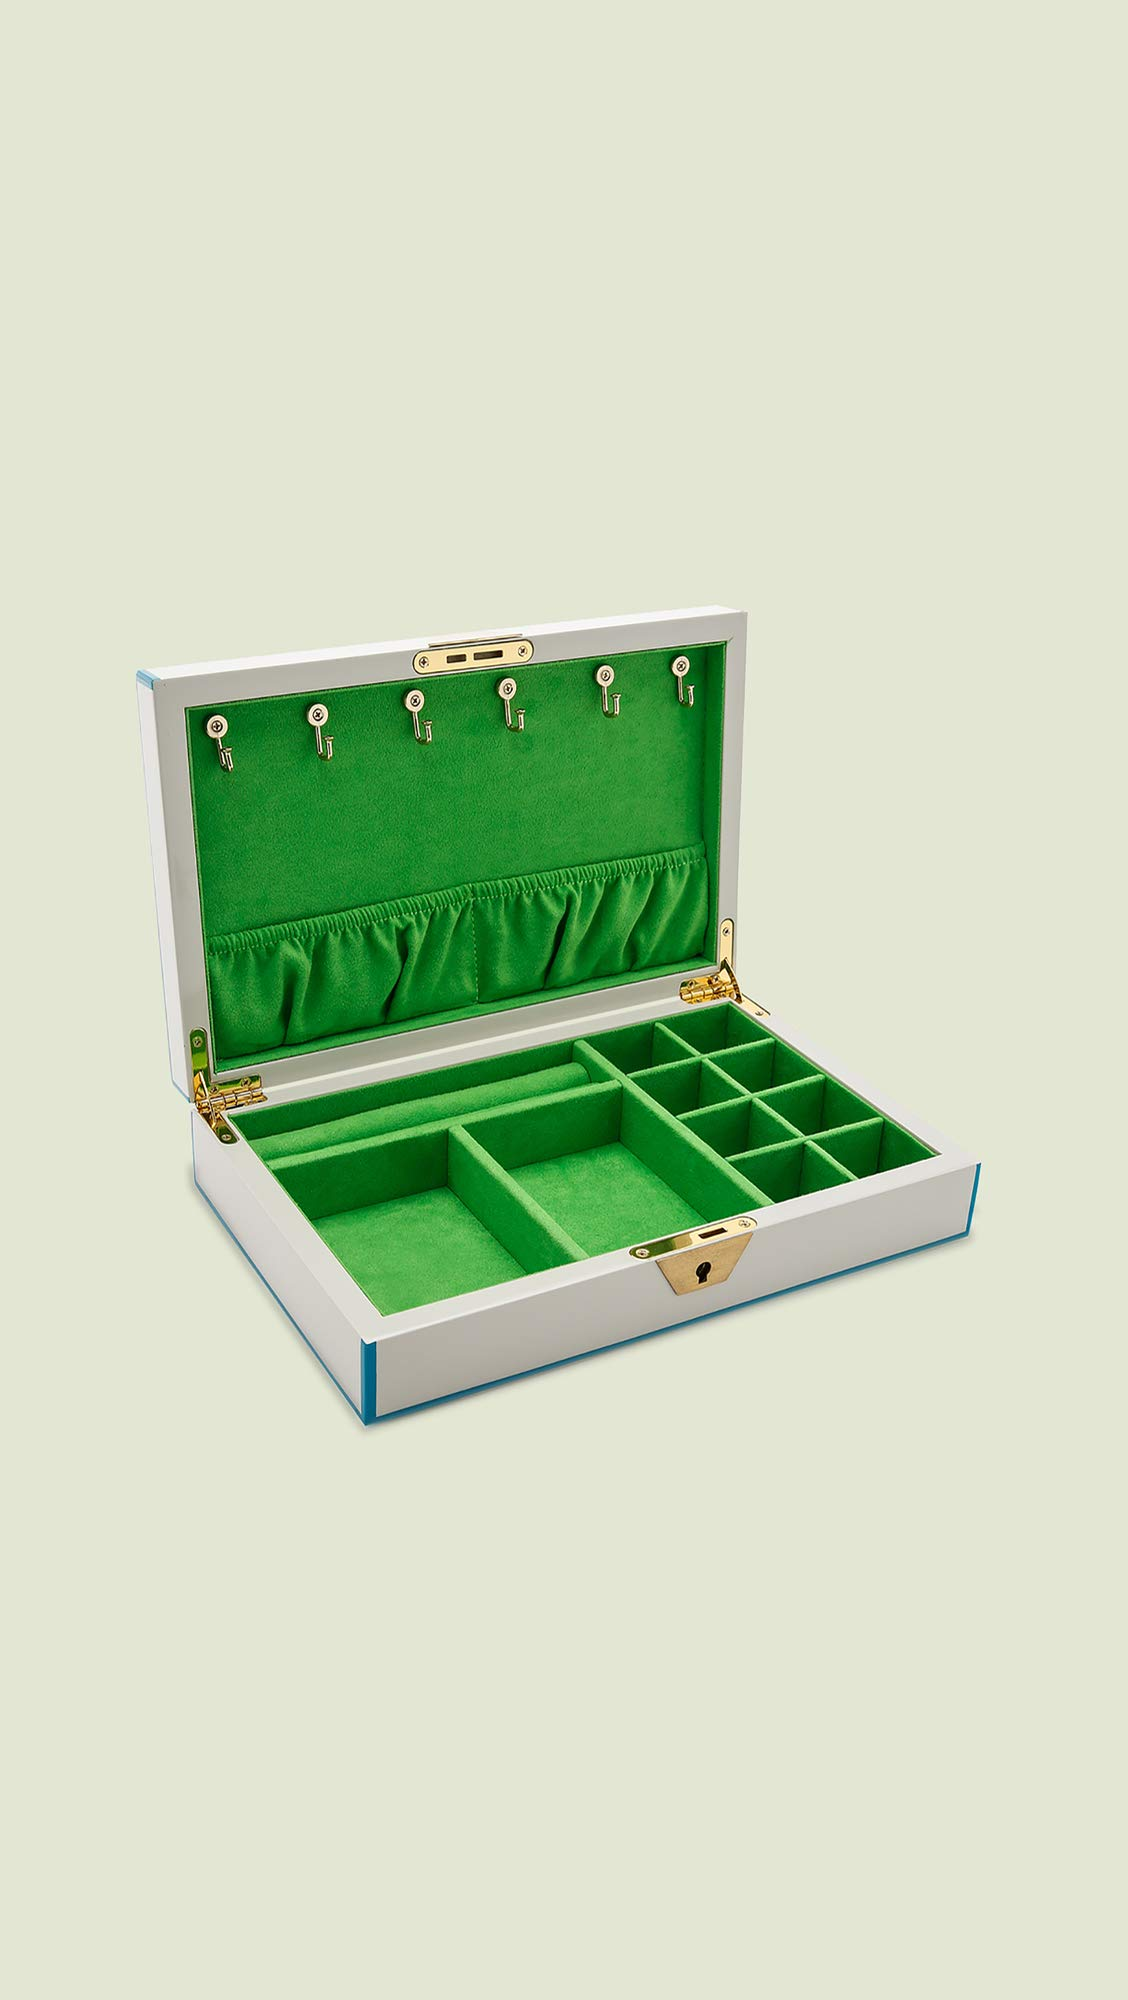 Jonathan Adler Lacquer Jewelry Box, White/Blue/Green by Jonathan Adler (Image #2)